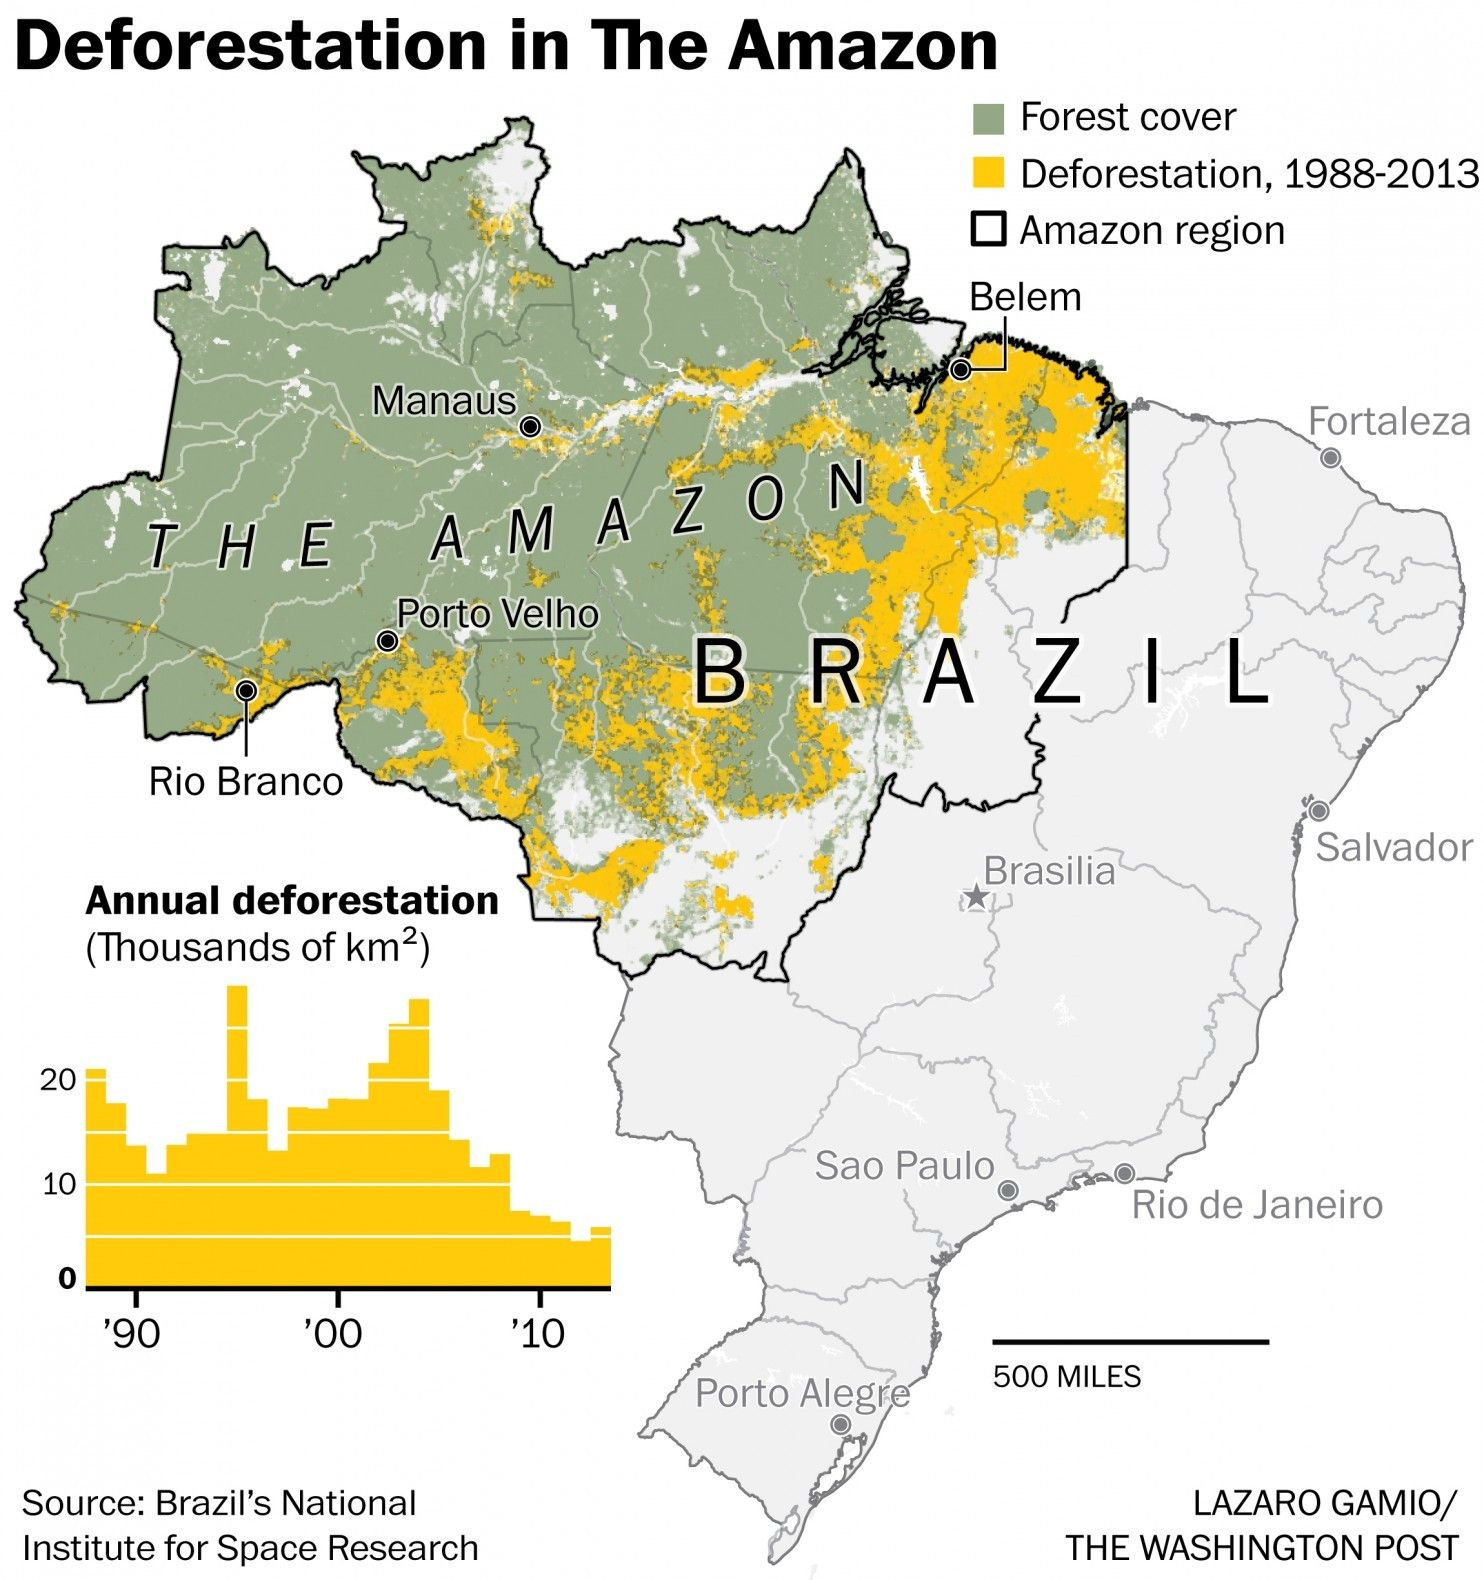 Deforestation Of The Amazon Rainforest And Atlantic Forest In